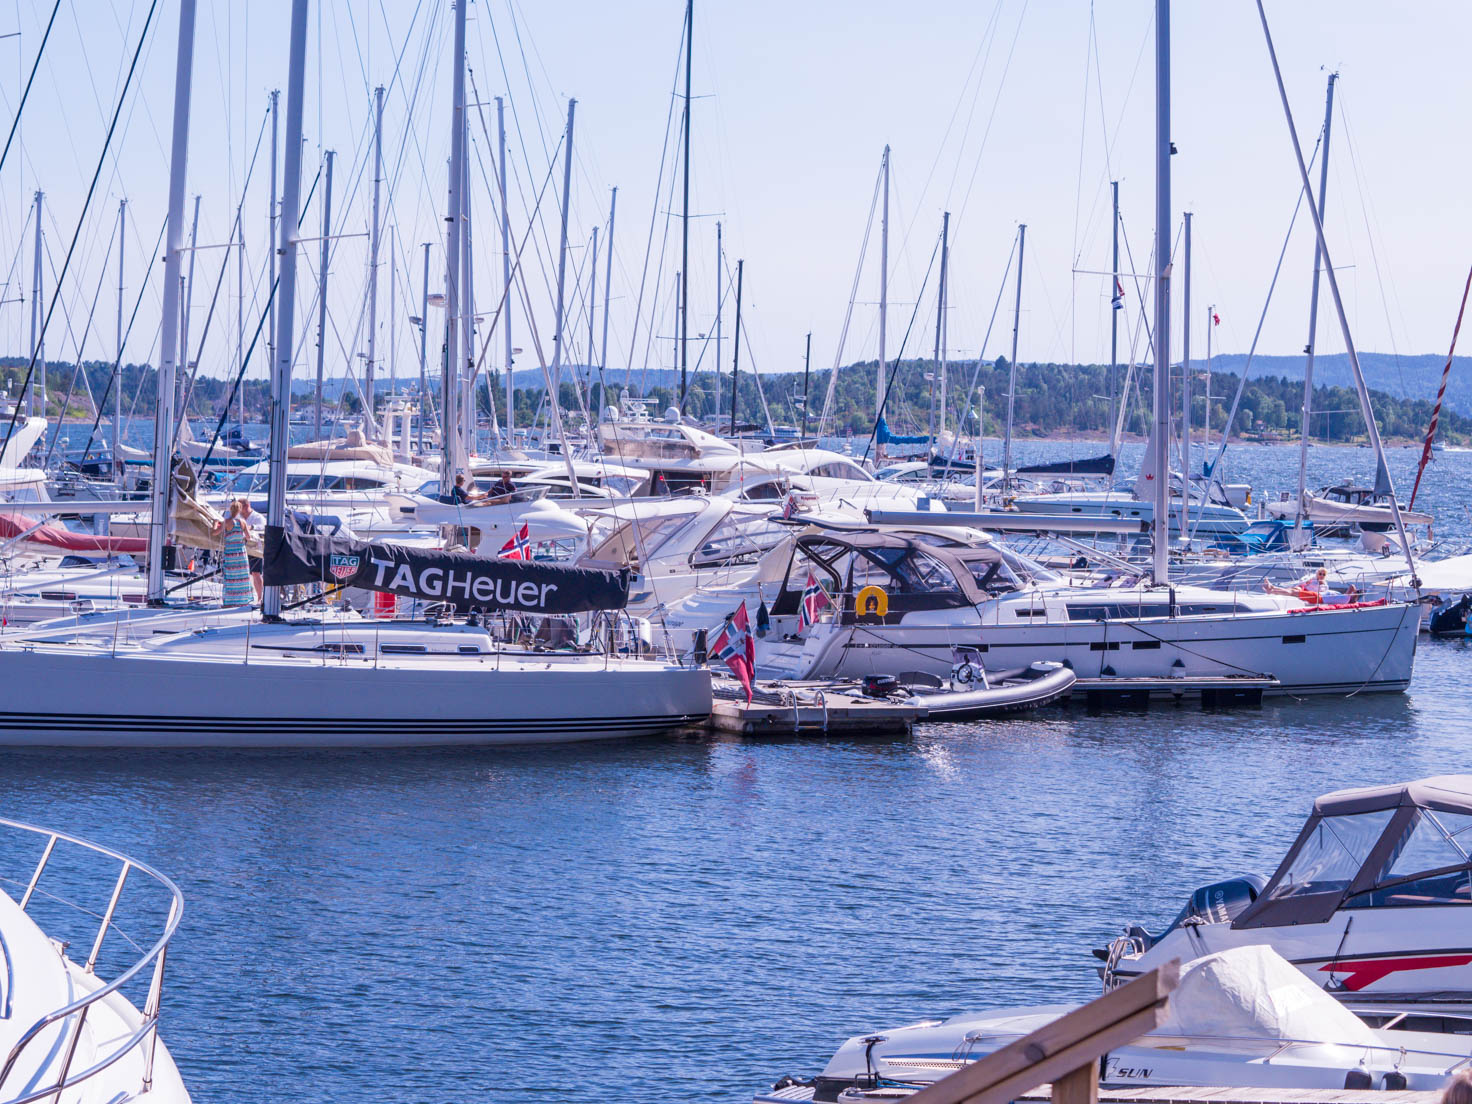 Visiting Marina in Oslo, Norway by Chic Journal blogger Petra